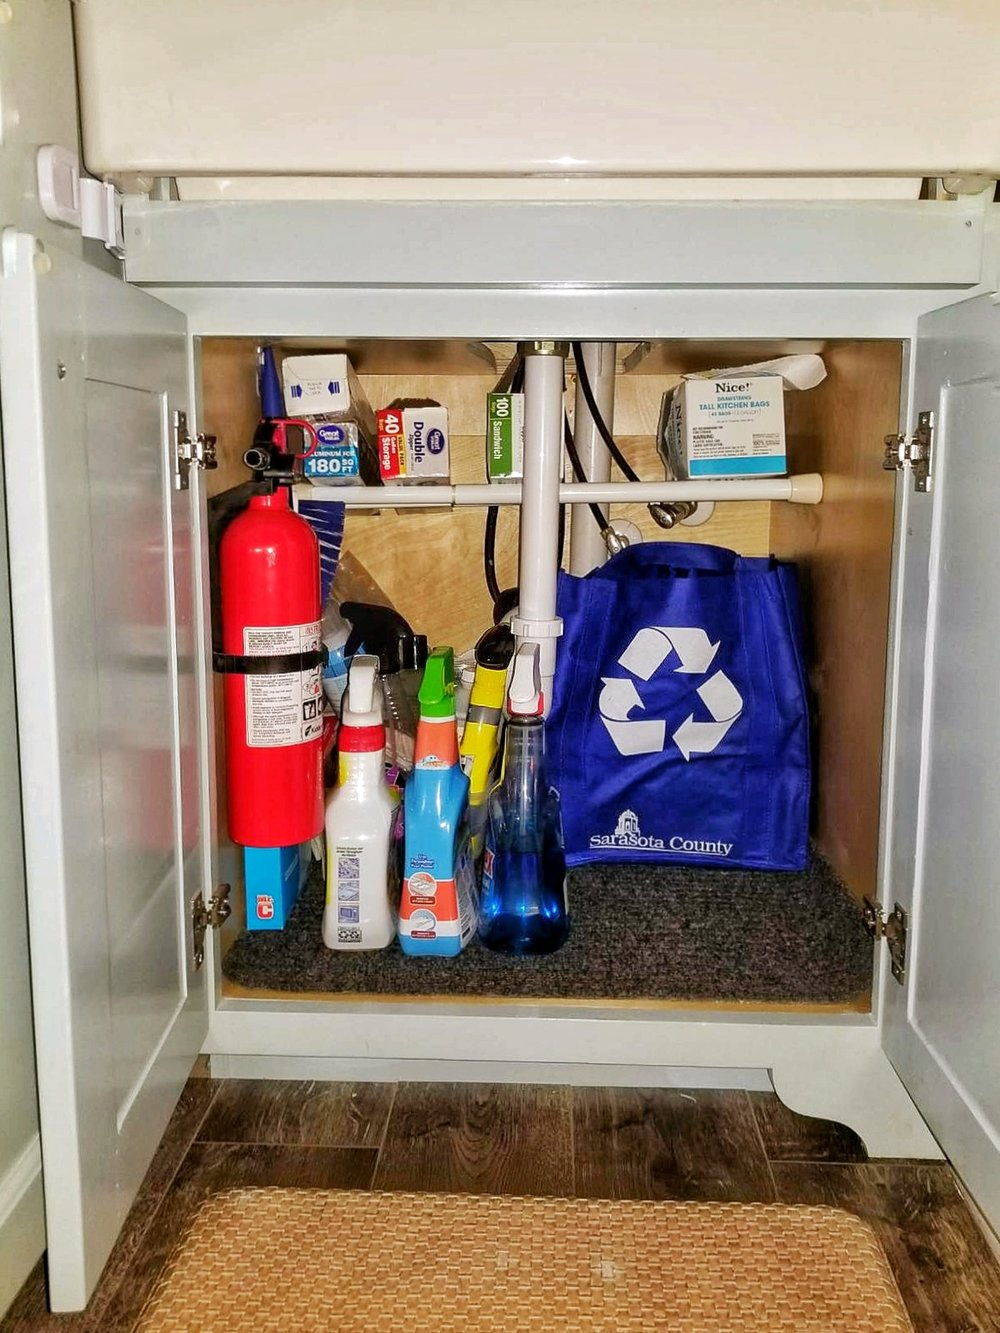 Tiny home organization closet space shoes bathroom tub shower clothes tiny house under sink organization